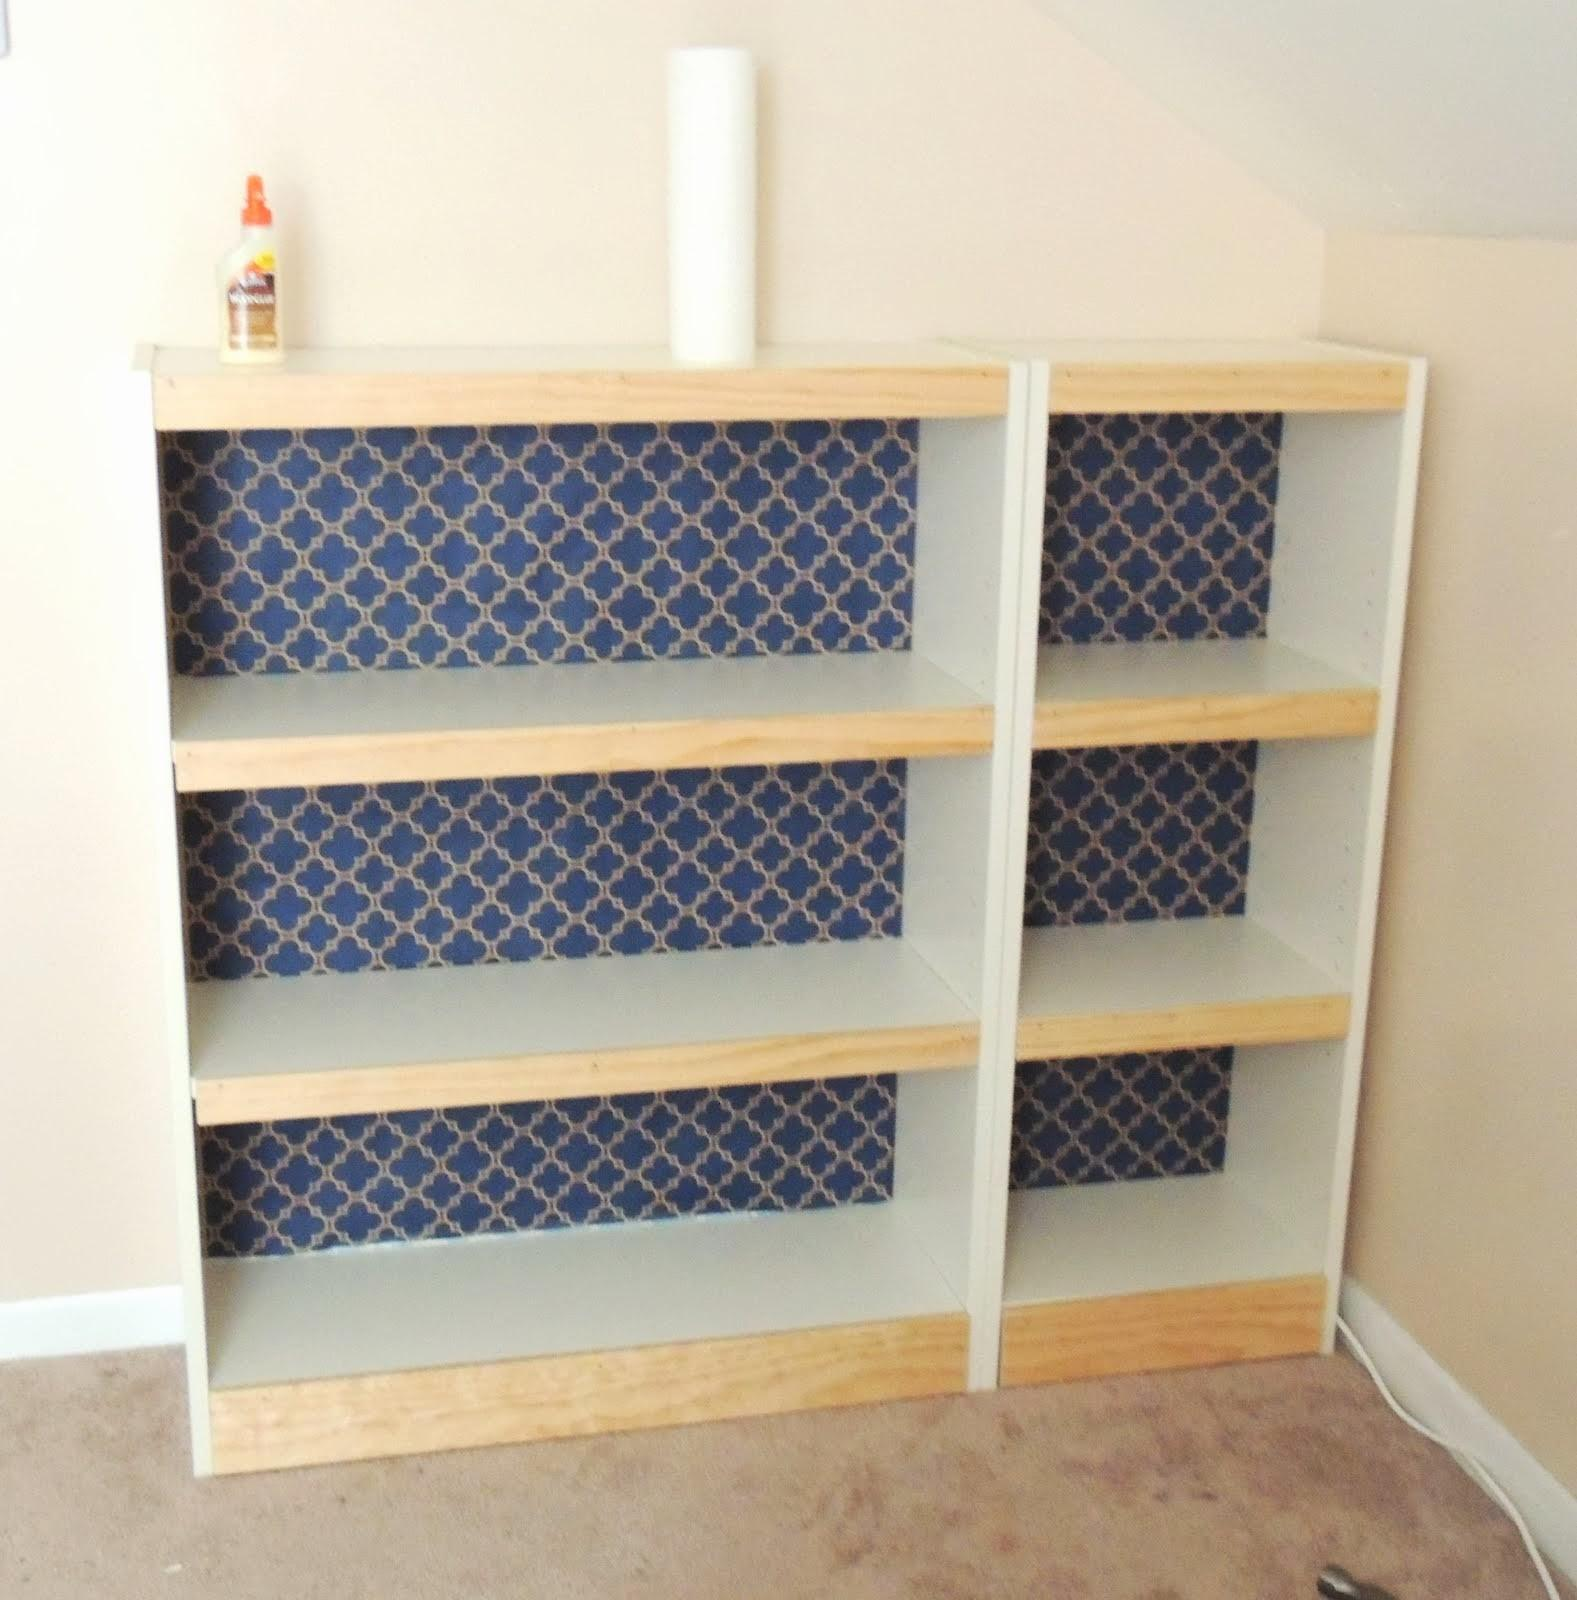 Diy Kallax Shelves Hacks Could Try Shelterness